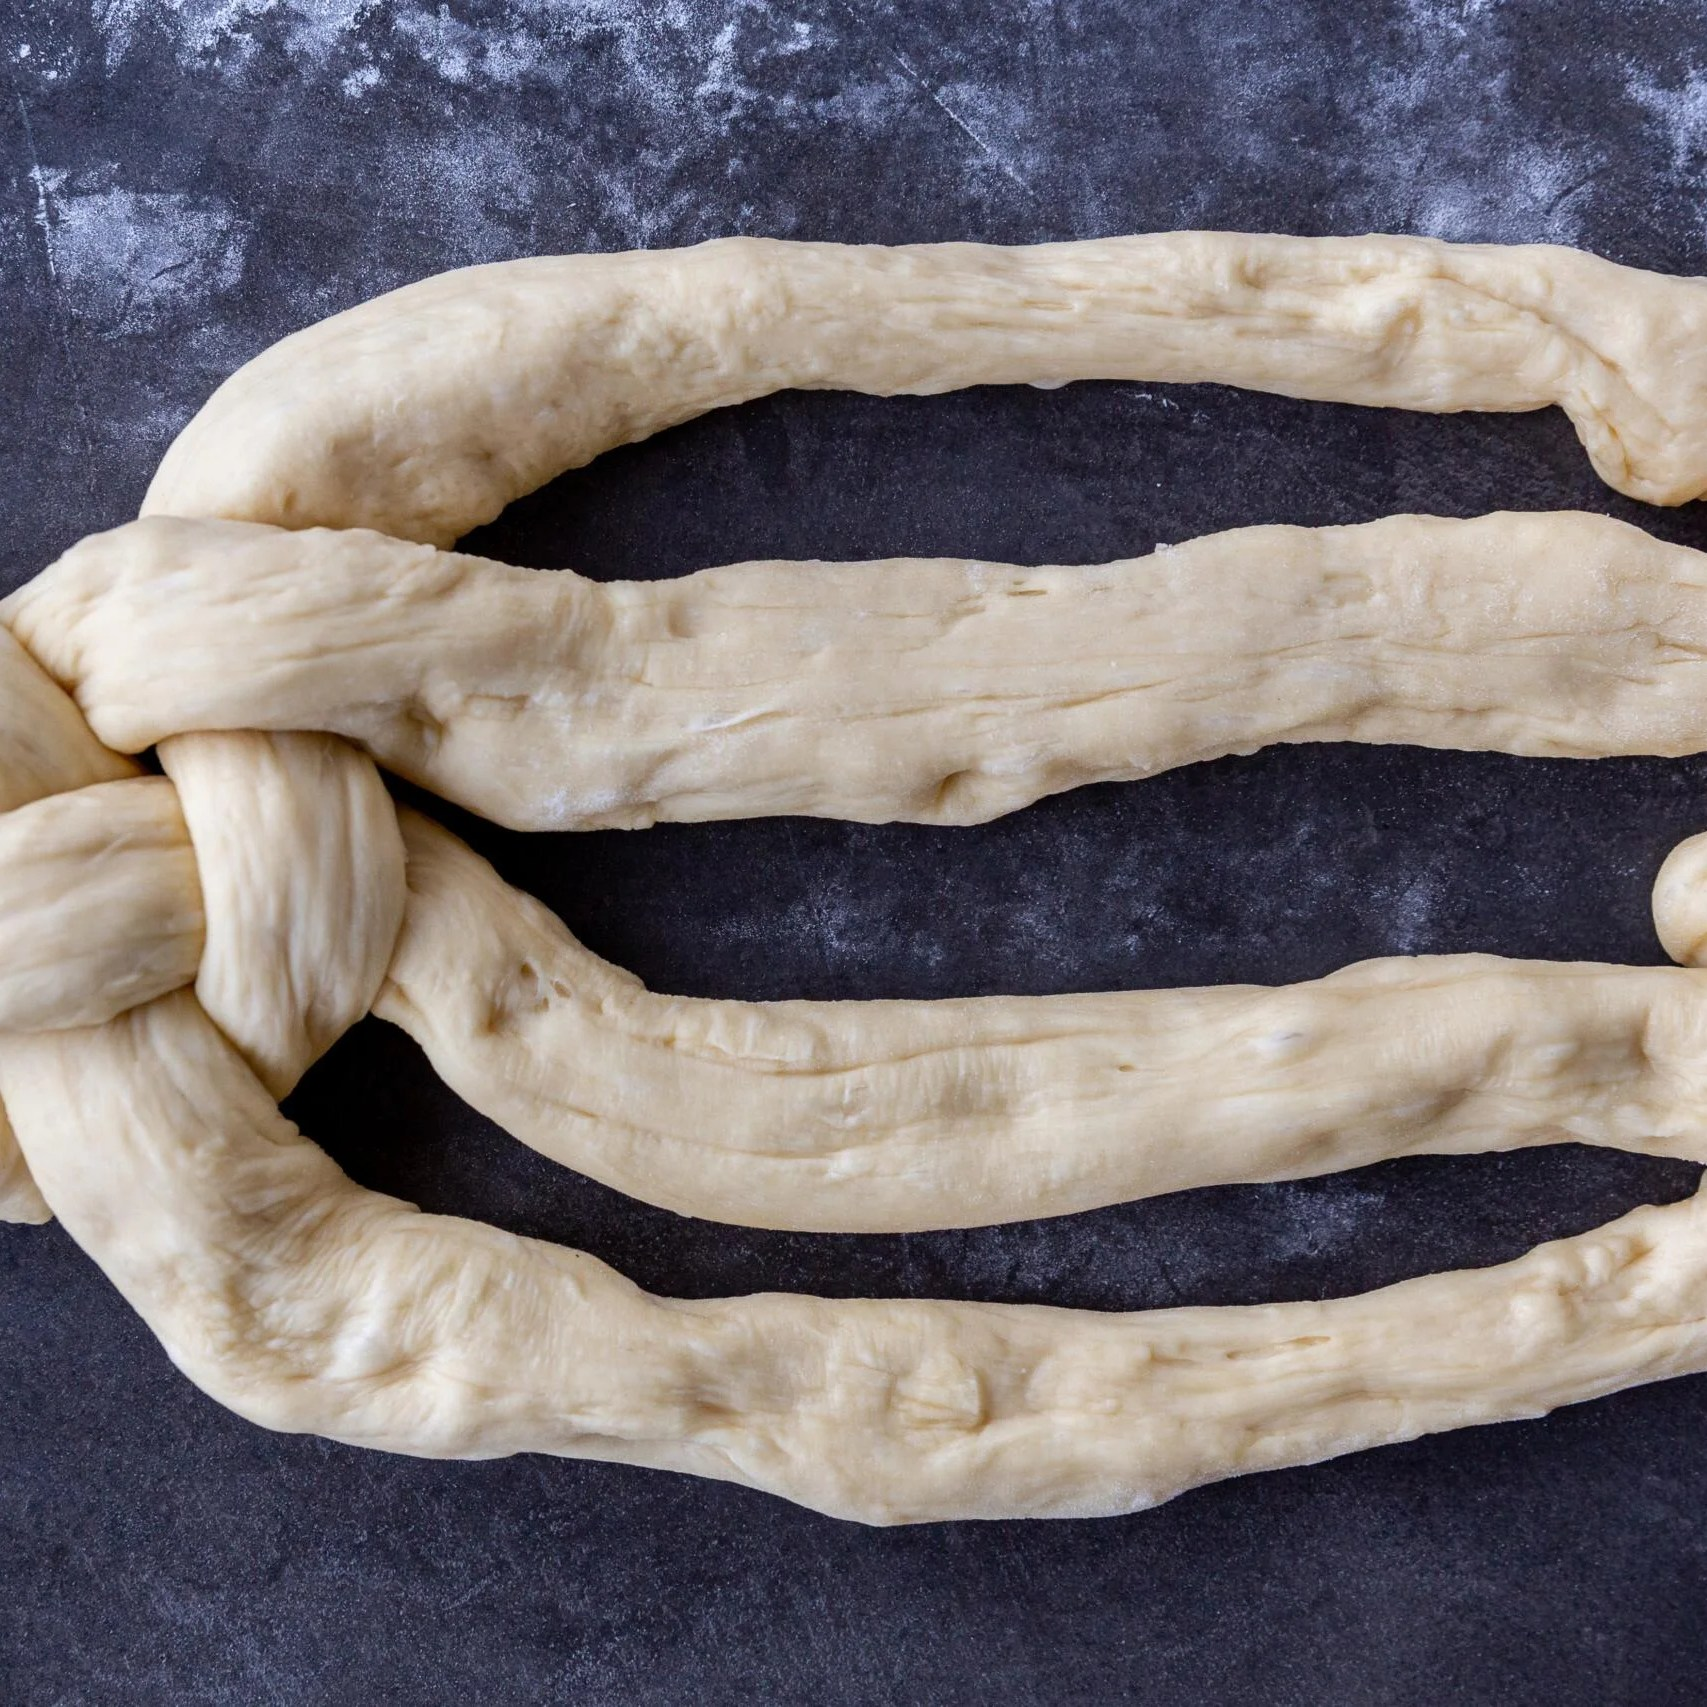 forming of the Challah Bread